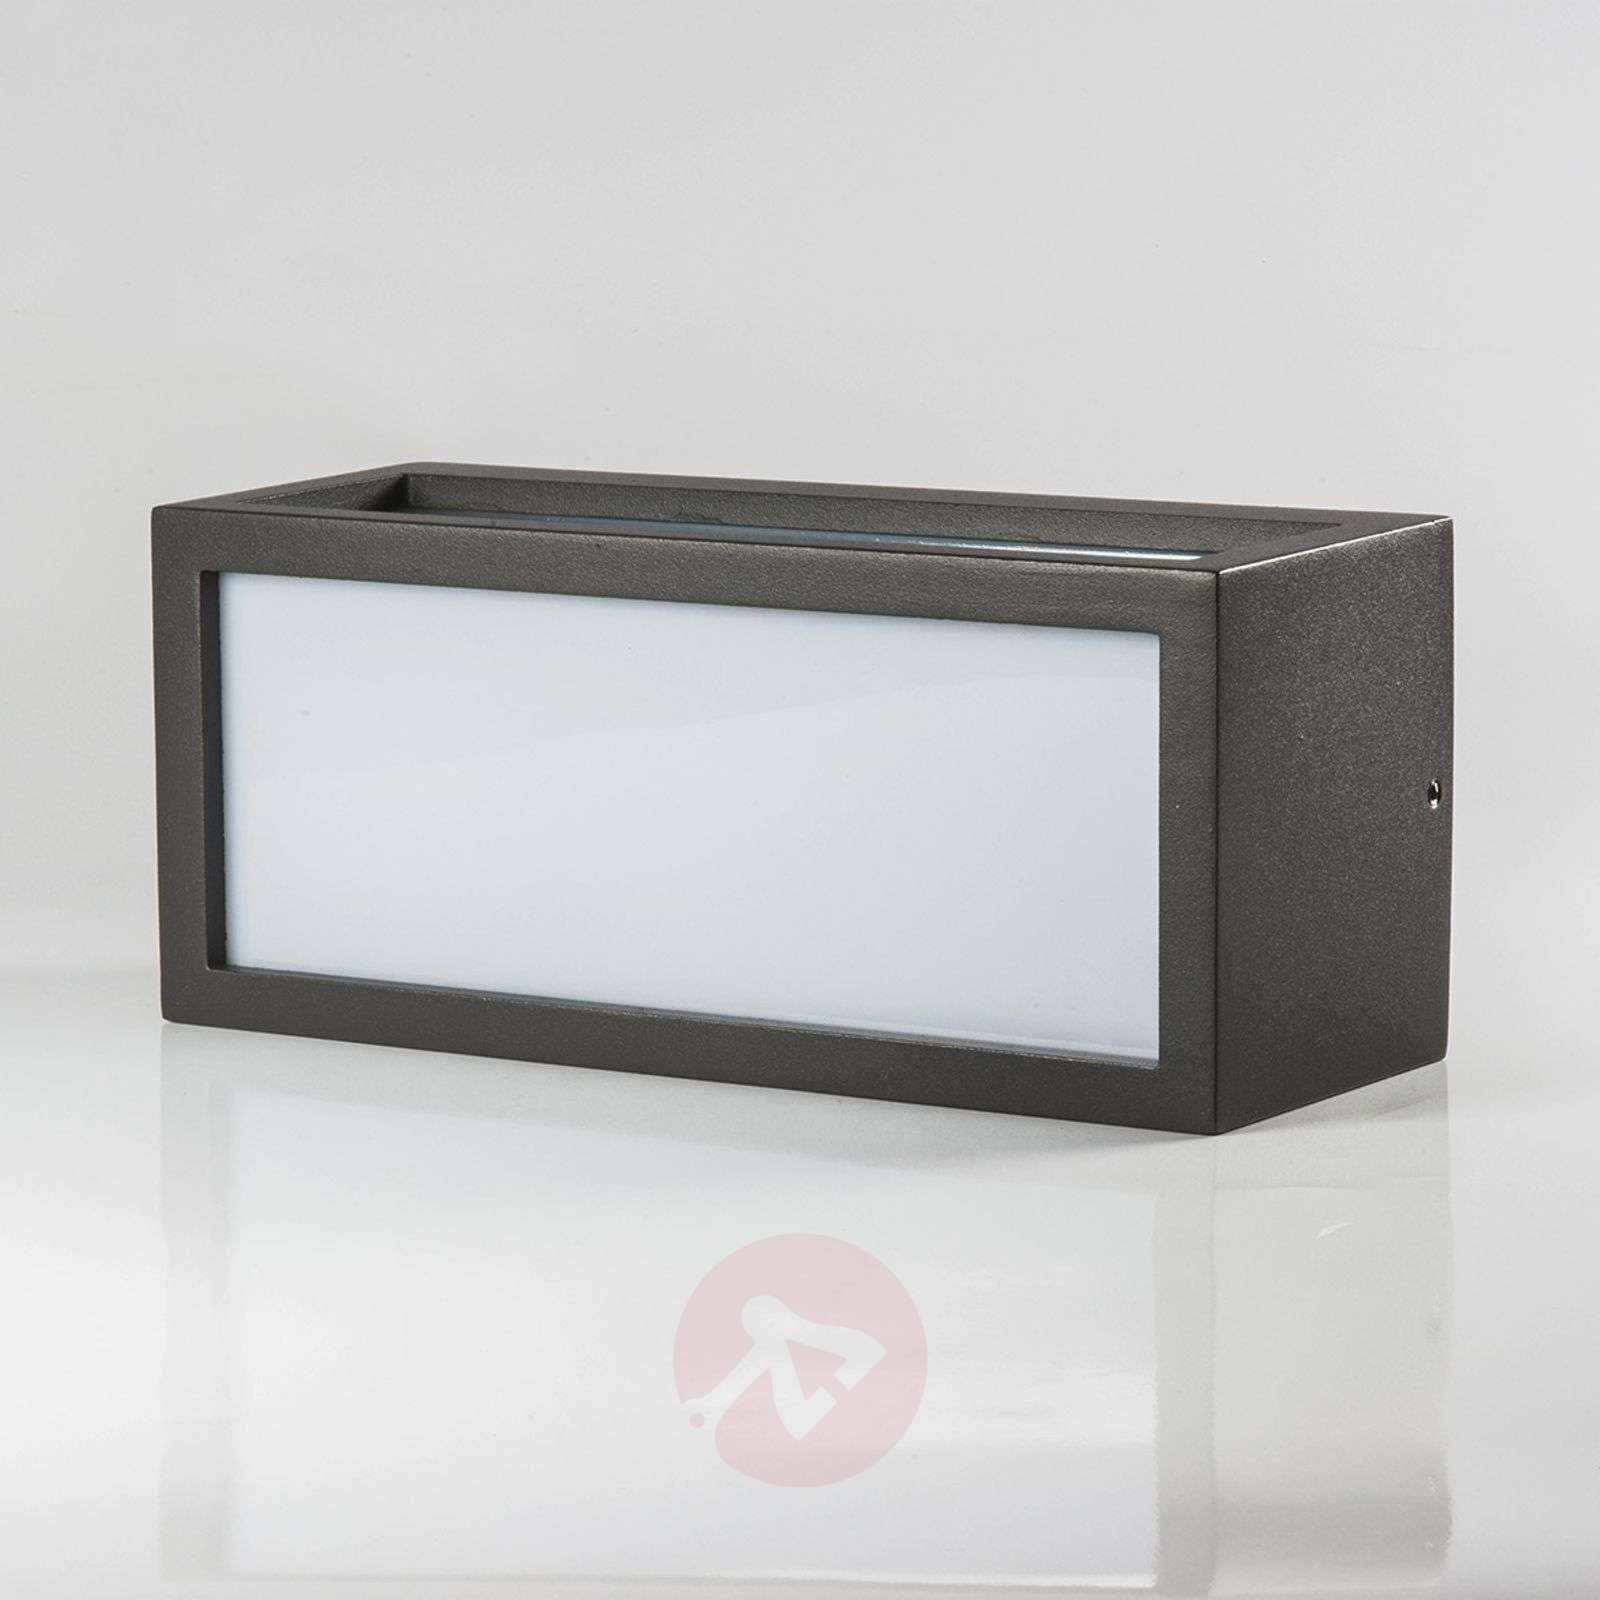 Decorative energy-saving outdoor wall light Tame-9616030-01